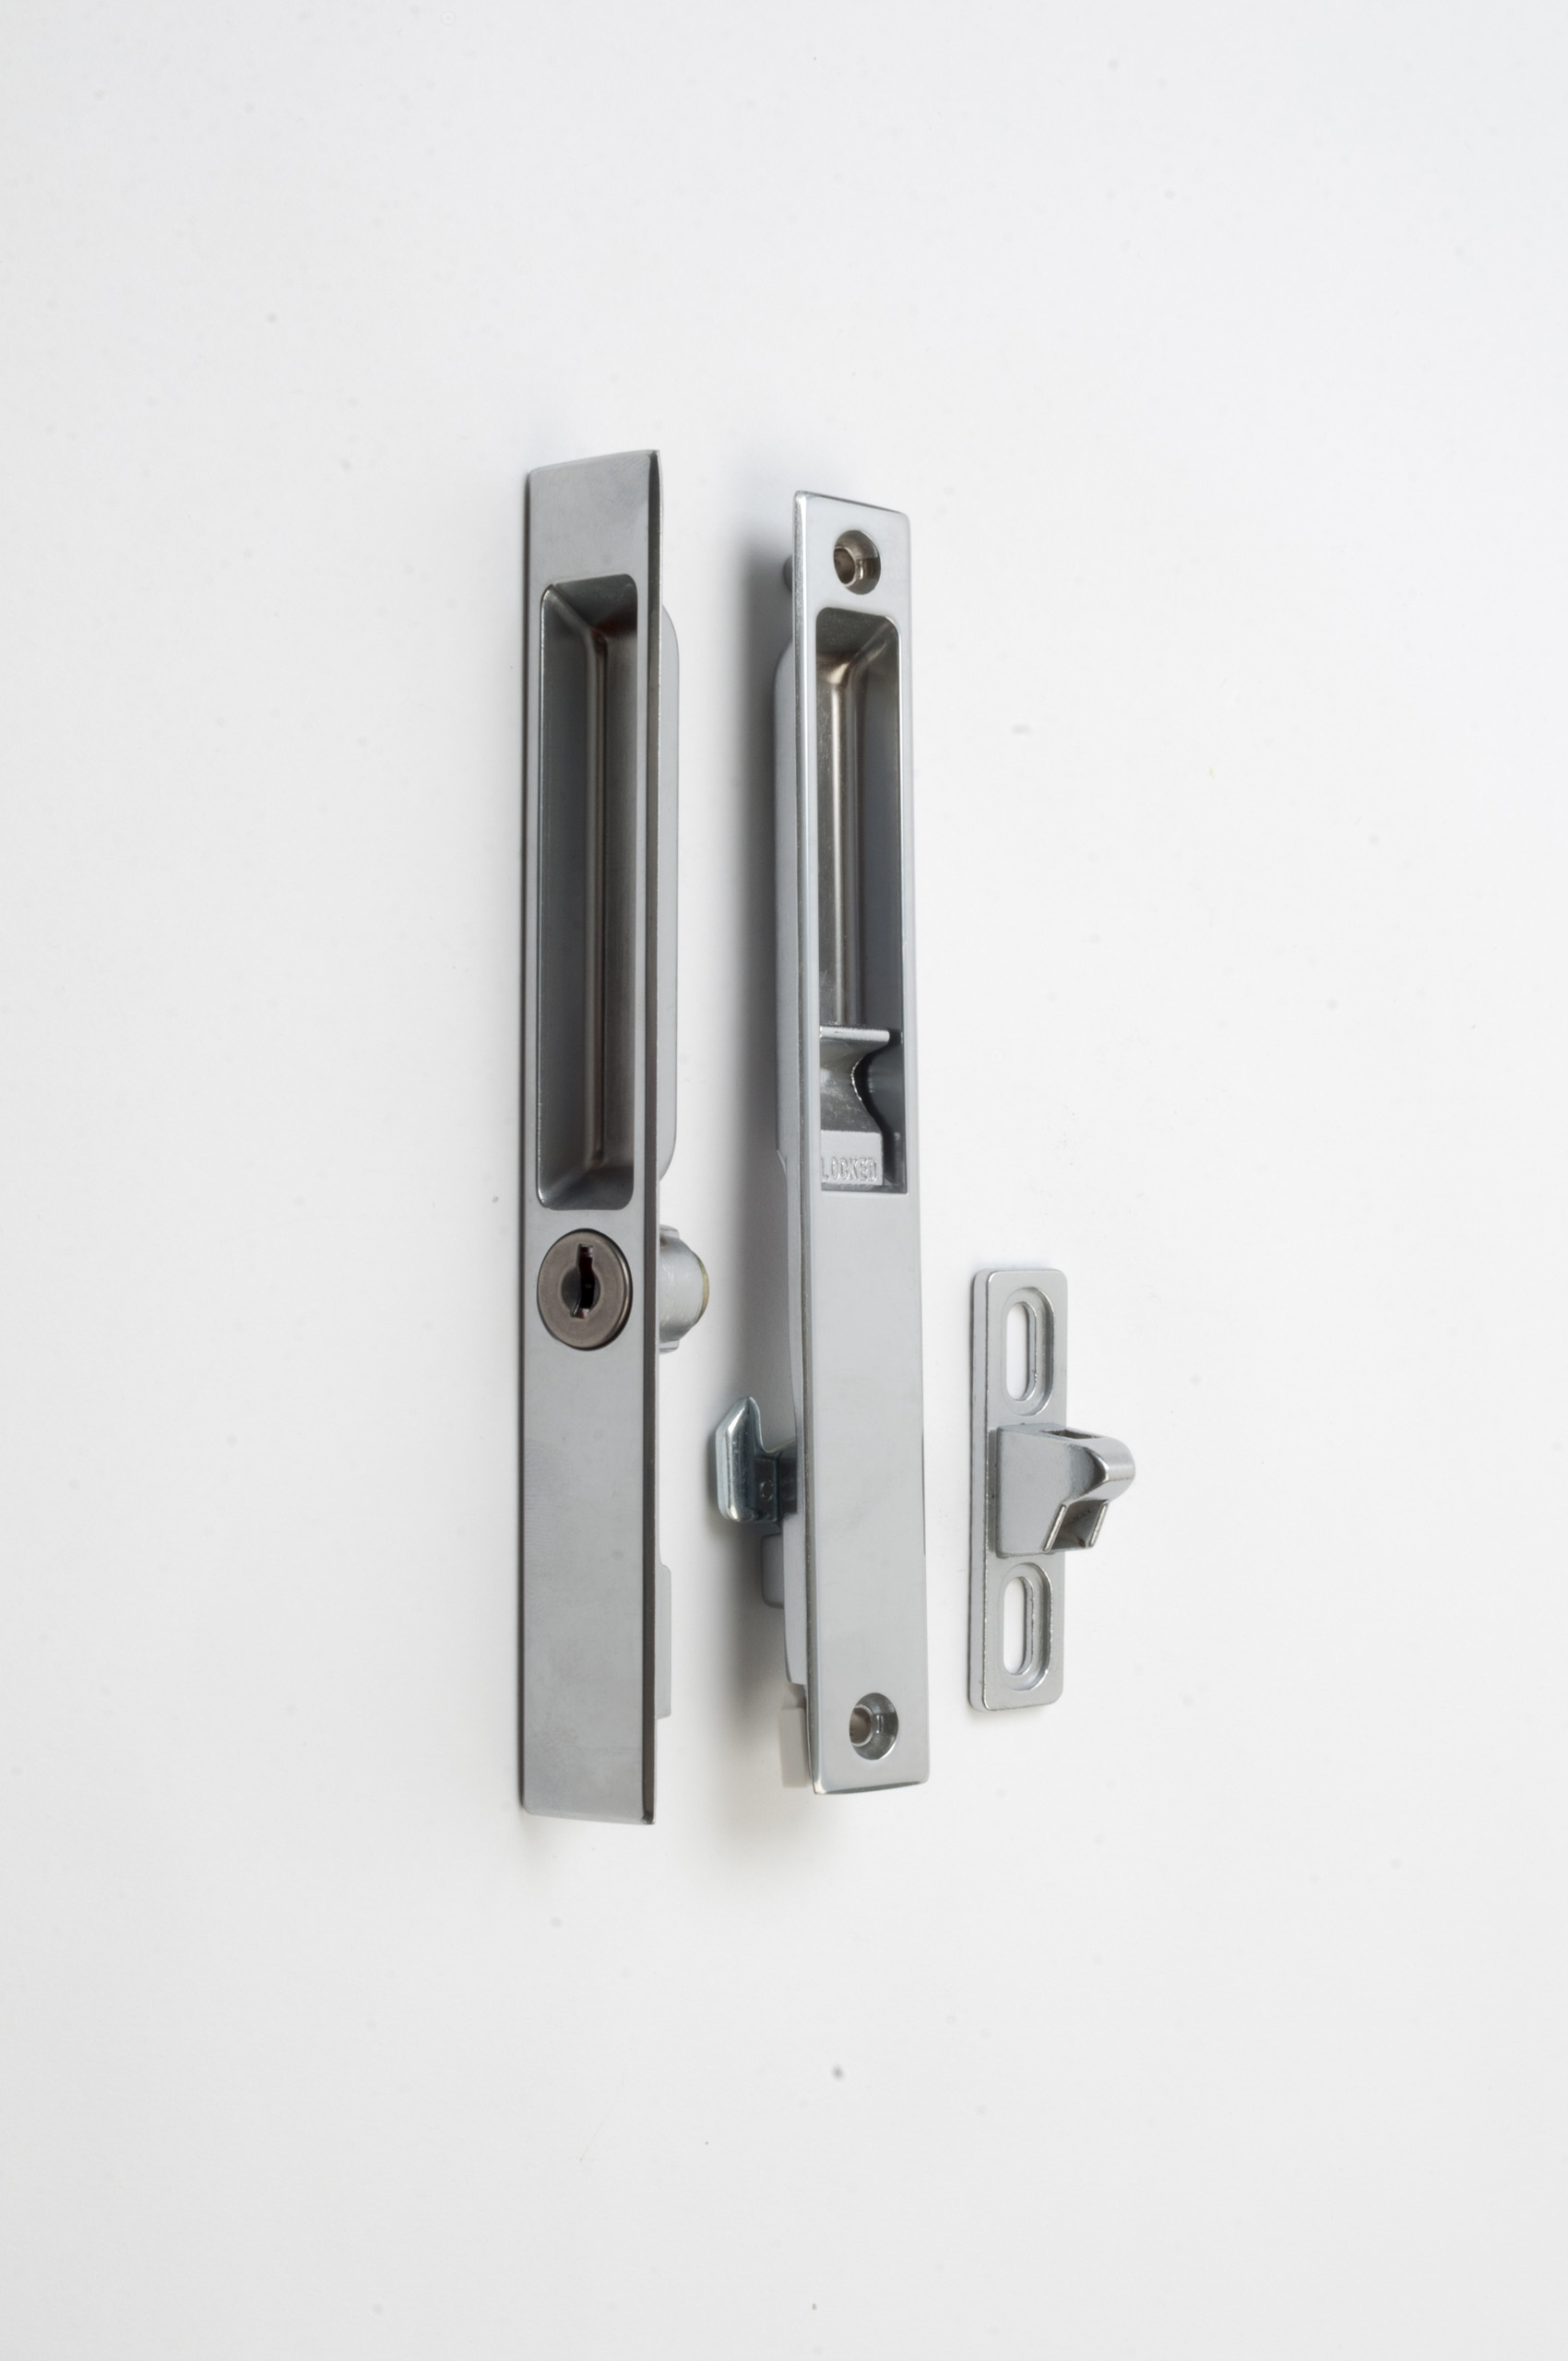 Sliding Door Locks And HandlesSliding Door Locks And Handles